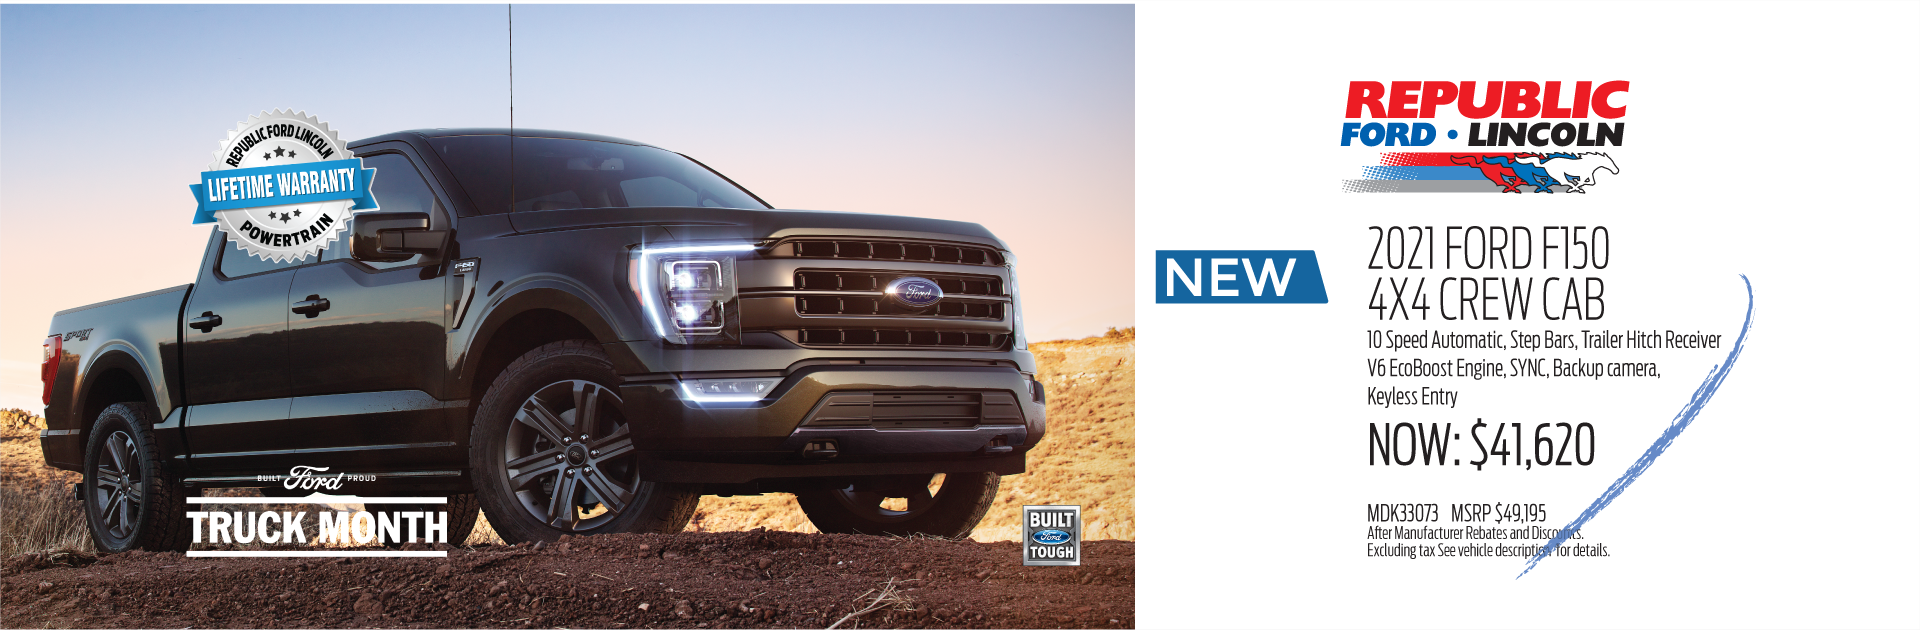 Truck Month 2021 Ford F150 1920x630